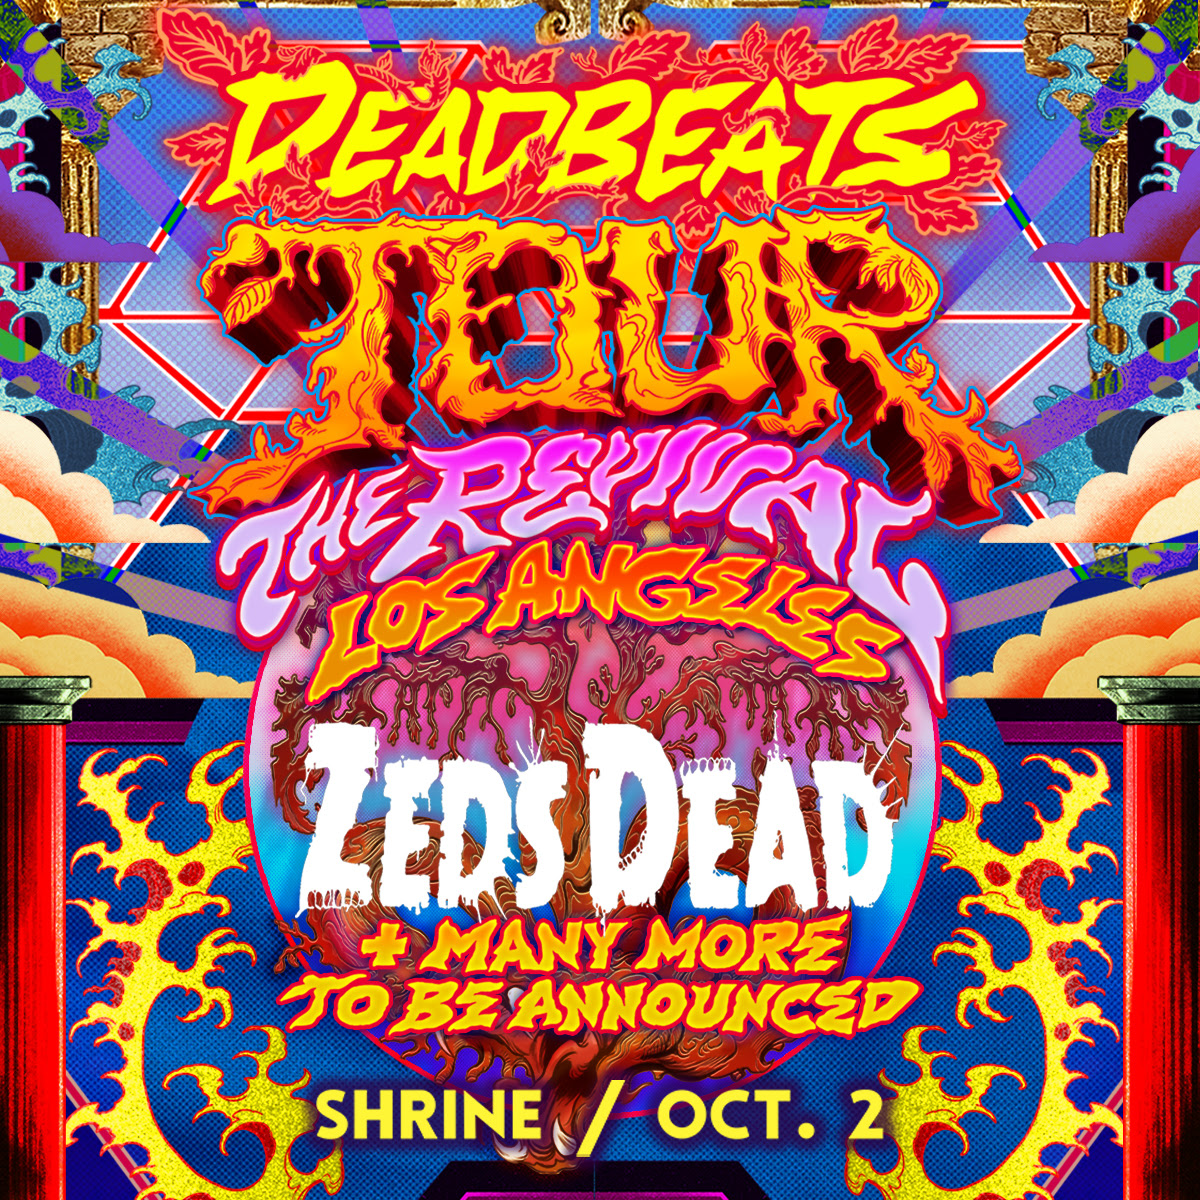 Zeds Dead - Deadbeats tour